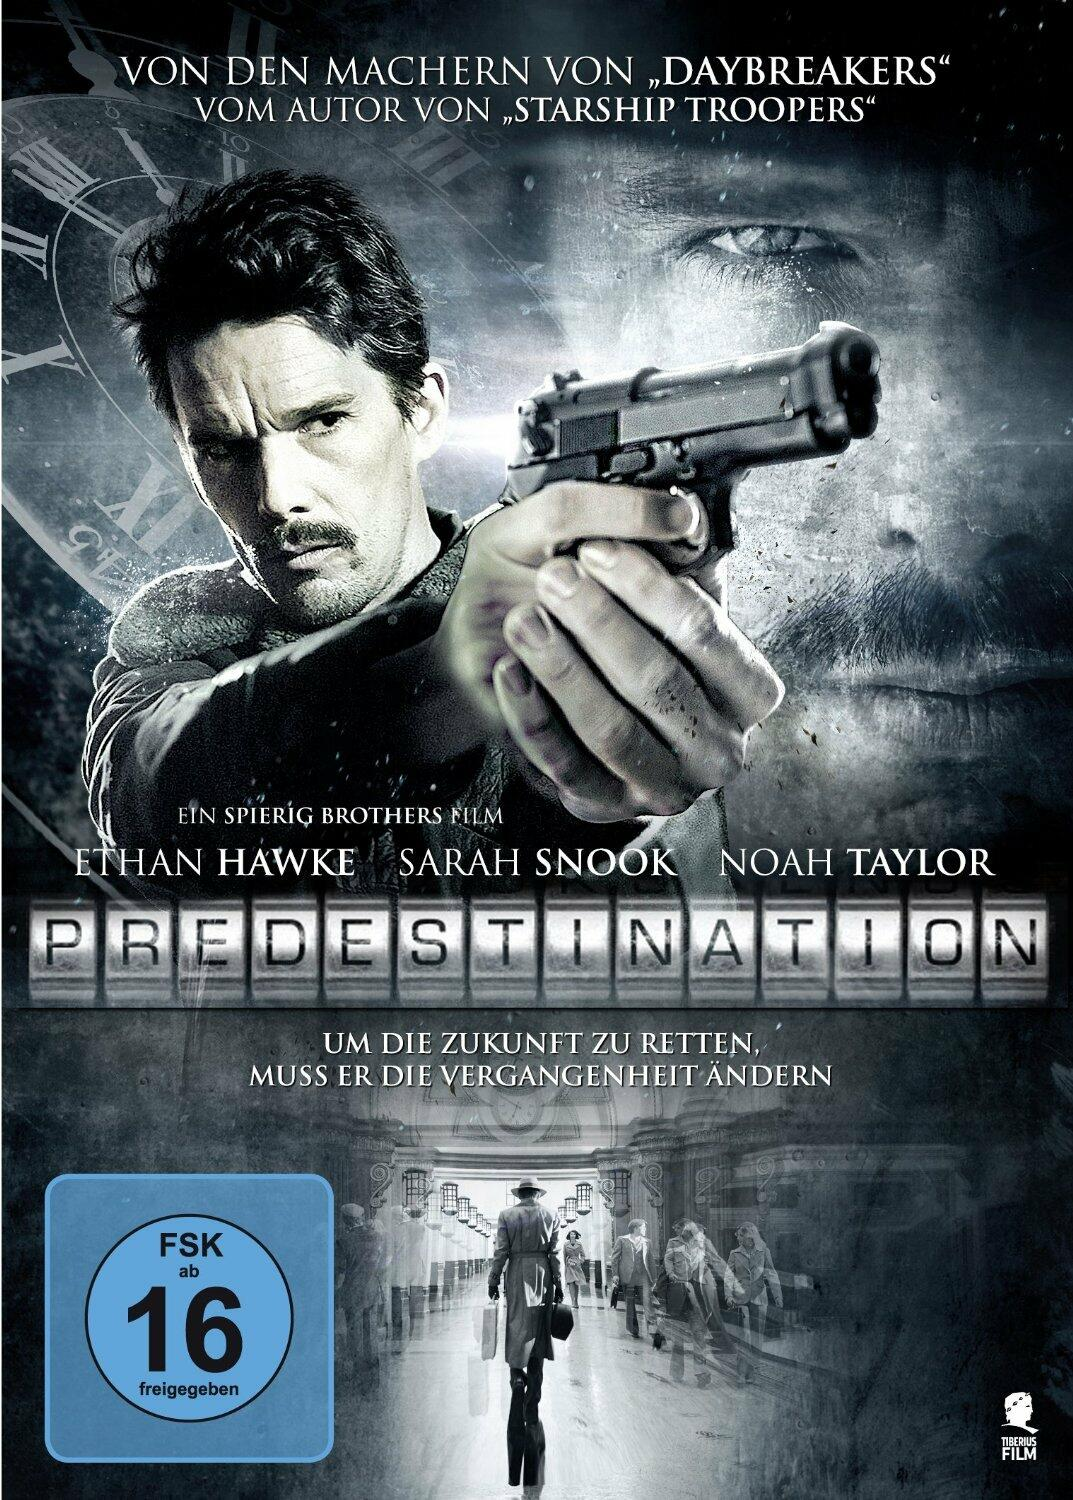 Predestination | Film 2014 | moviepilot.de